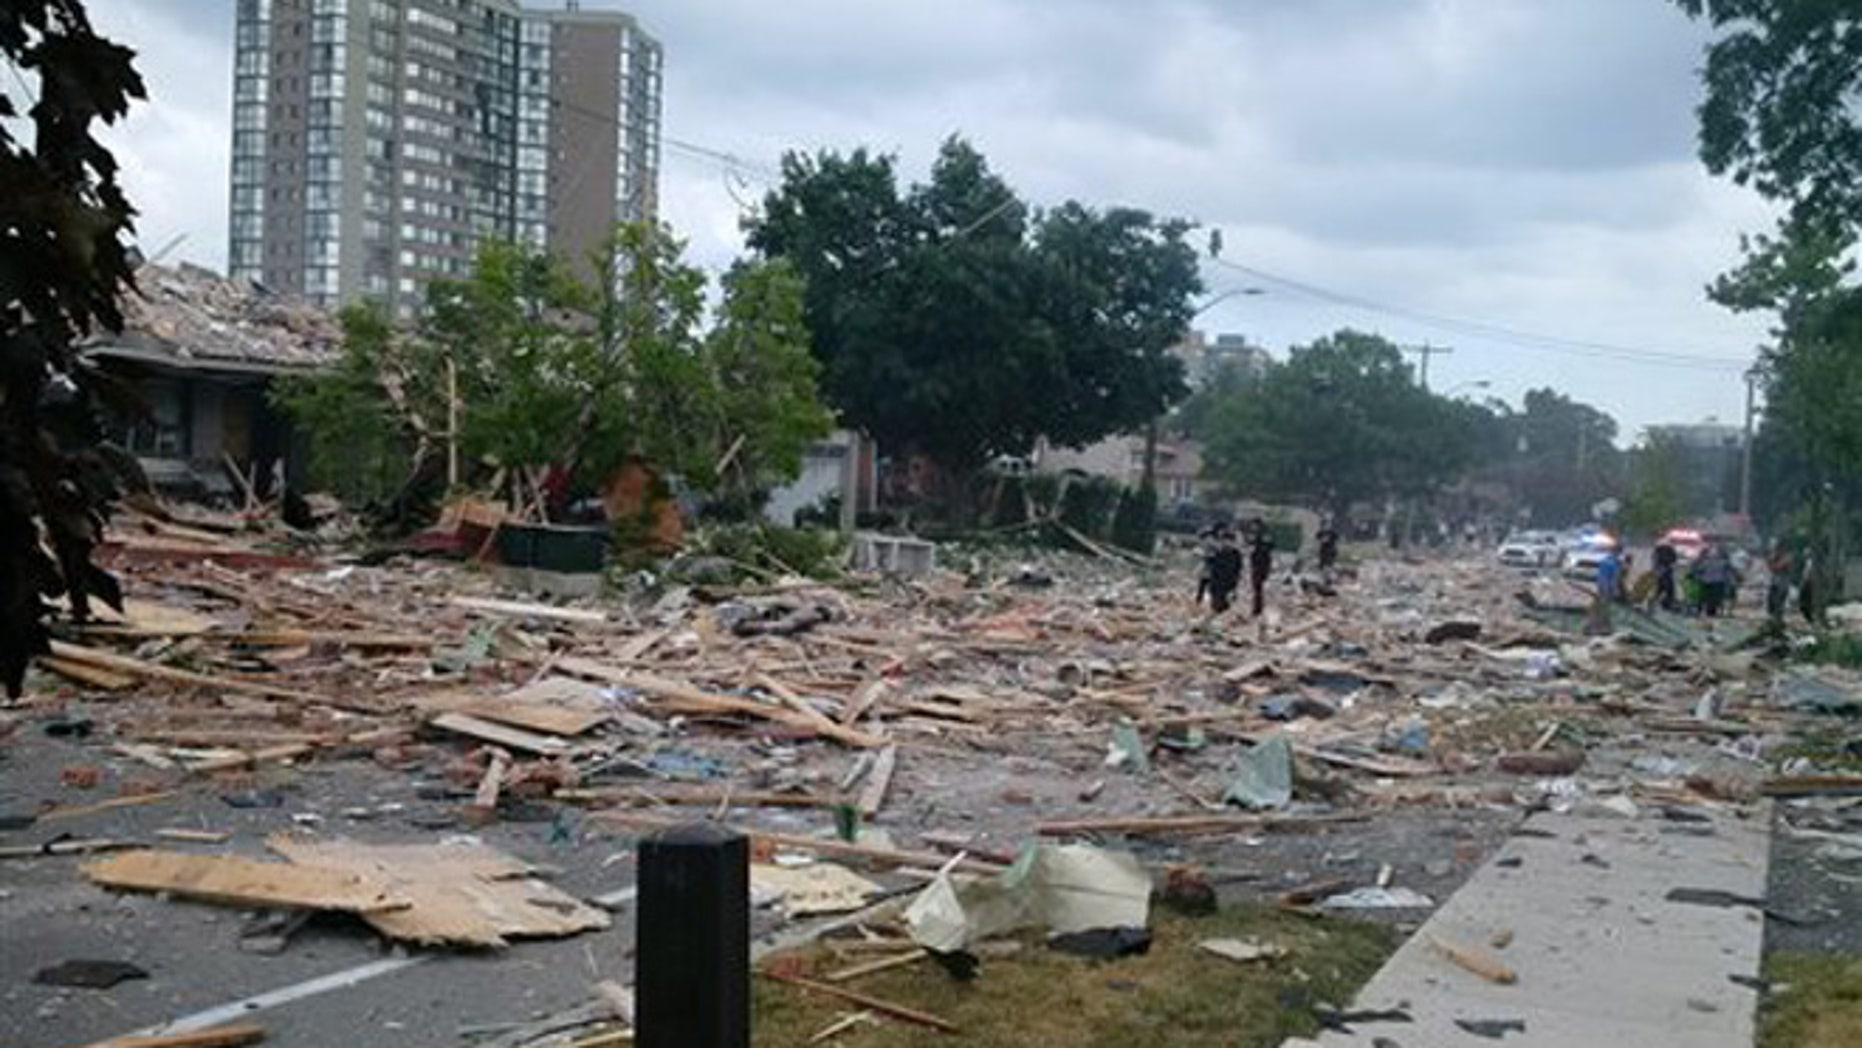 Debris litters a street after a house explosion in Mississauga, Ontario, Tuesday, June 28, 2016.